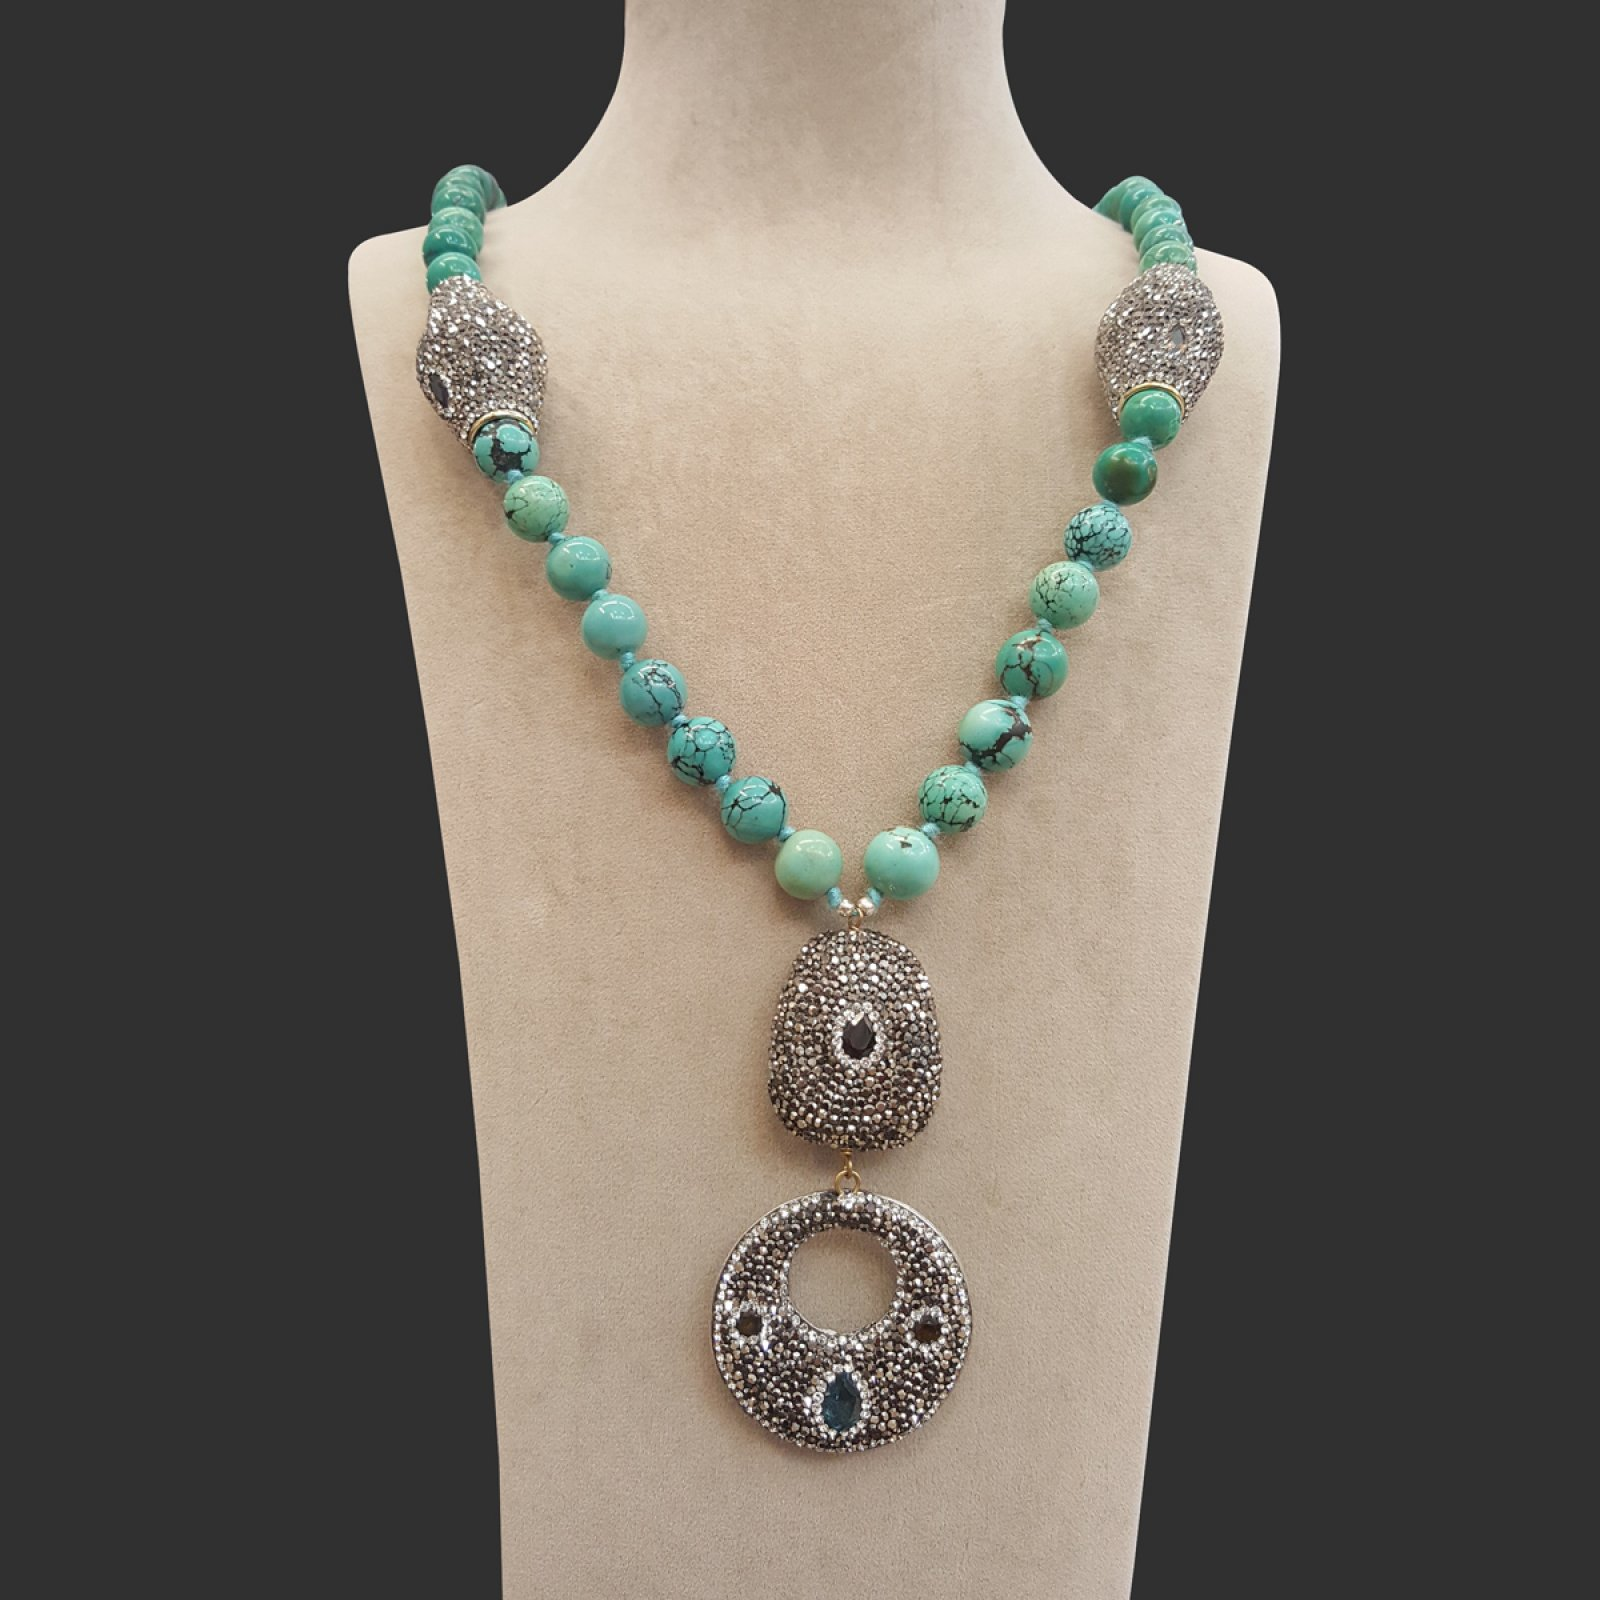 DRN16 - TURQUOISE STONE NECKLACE DECORATED WITH SWAROVSKI CRYSTALS